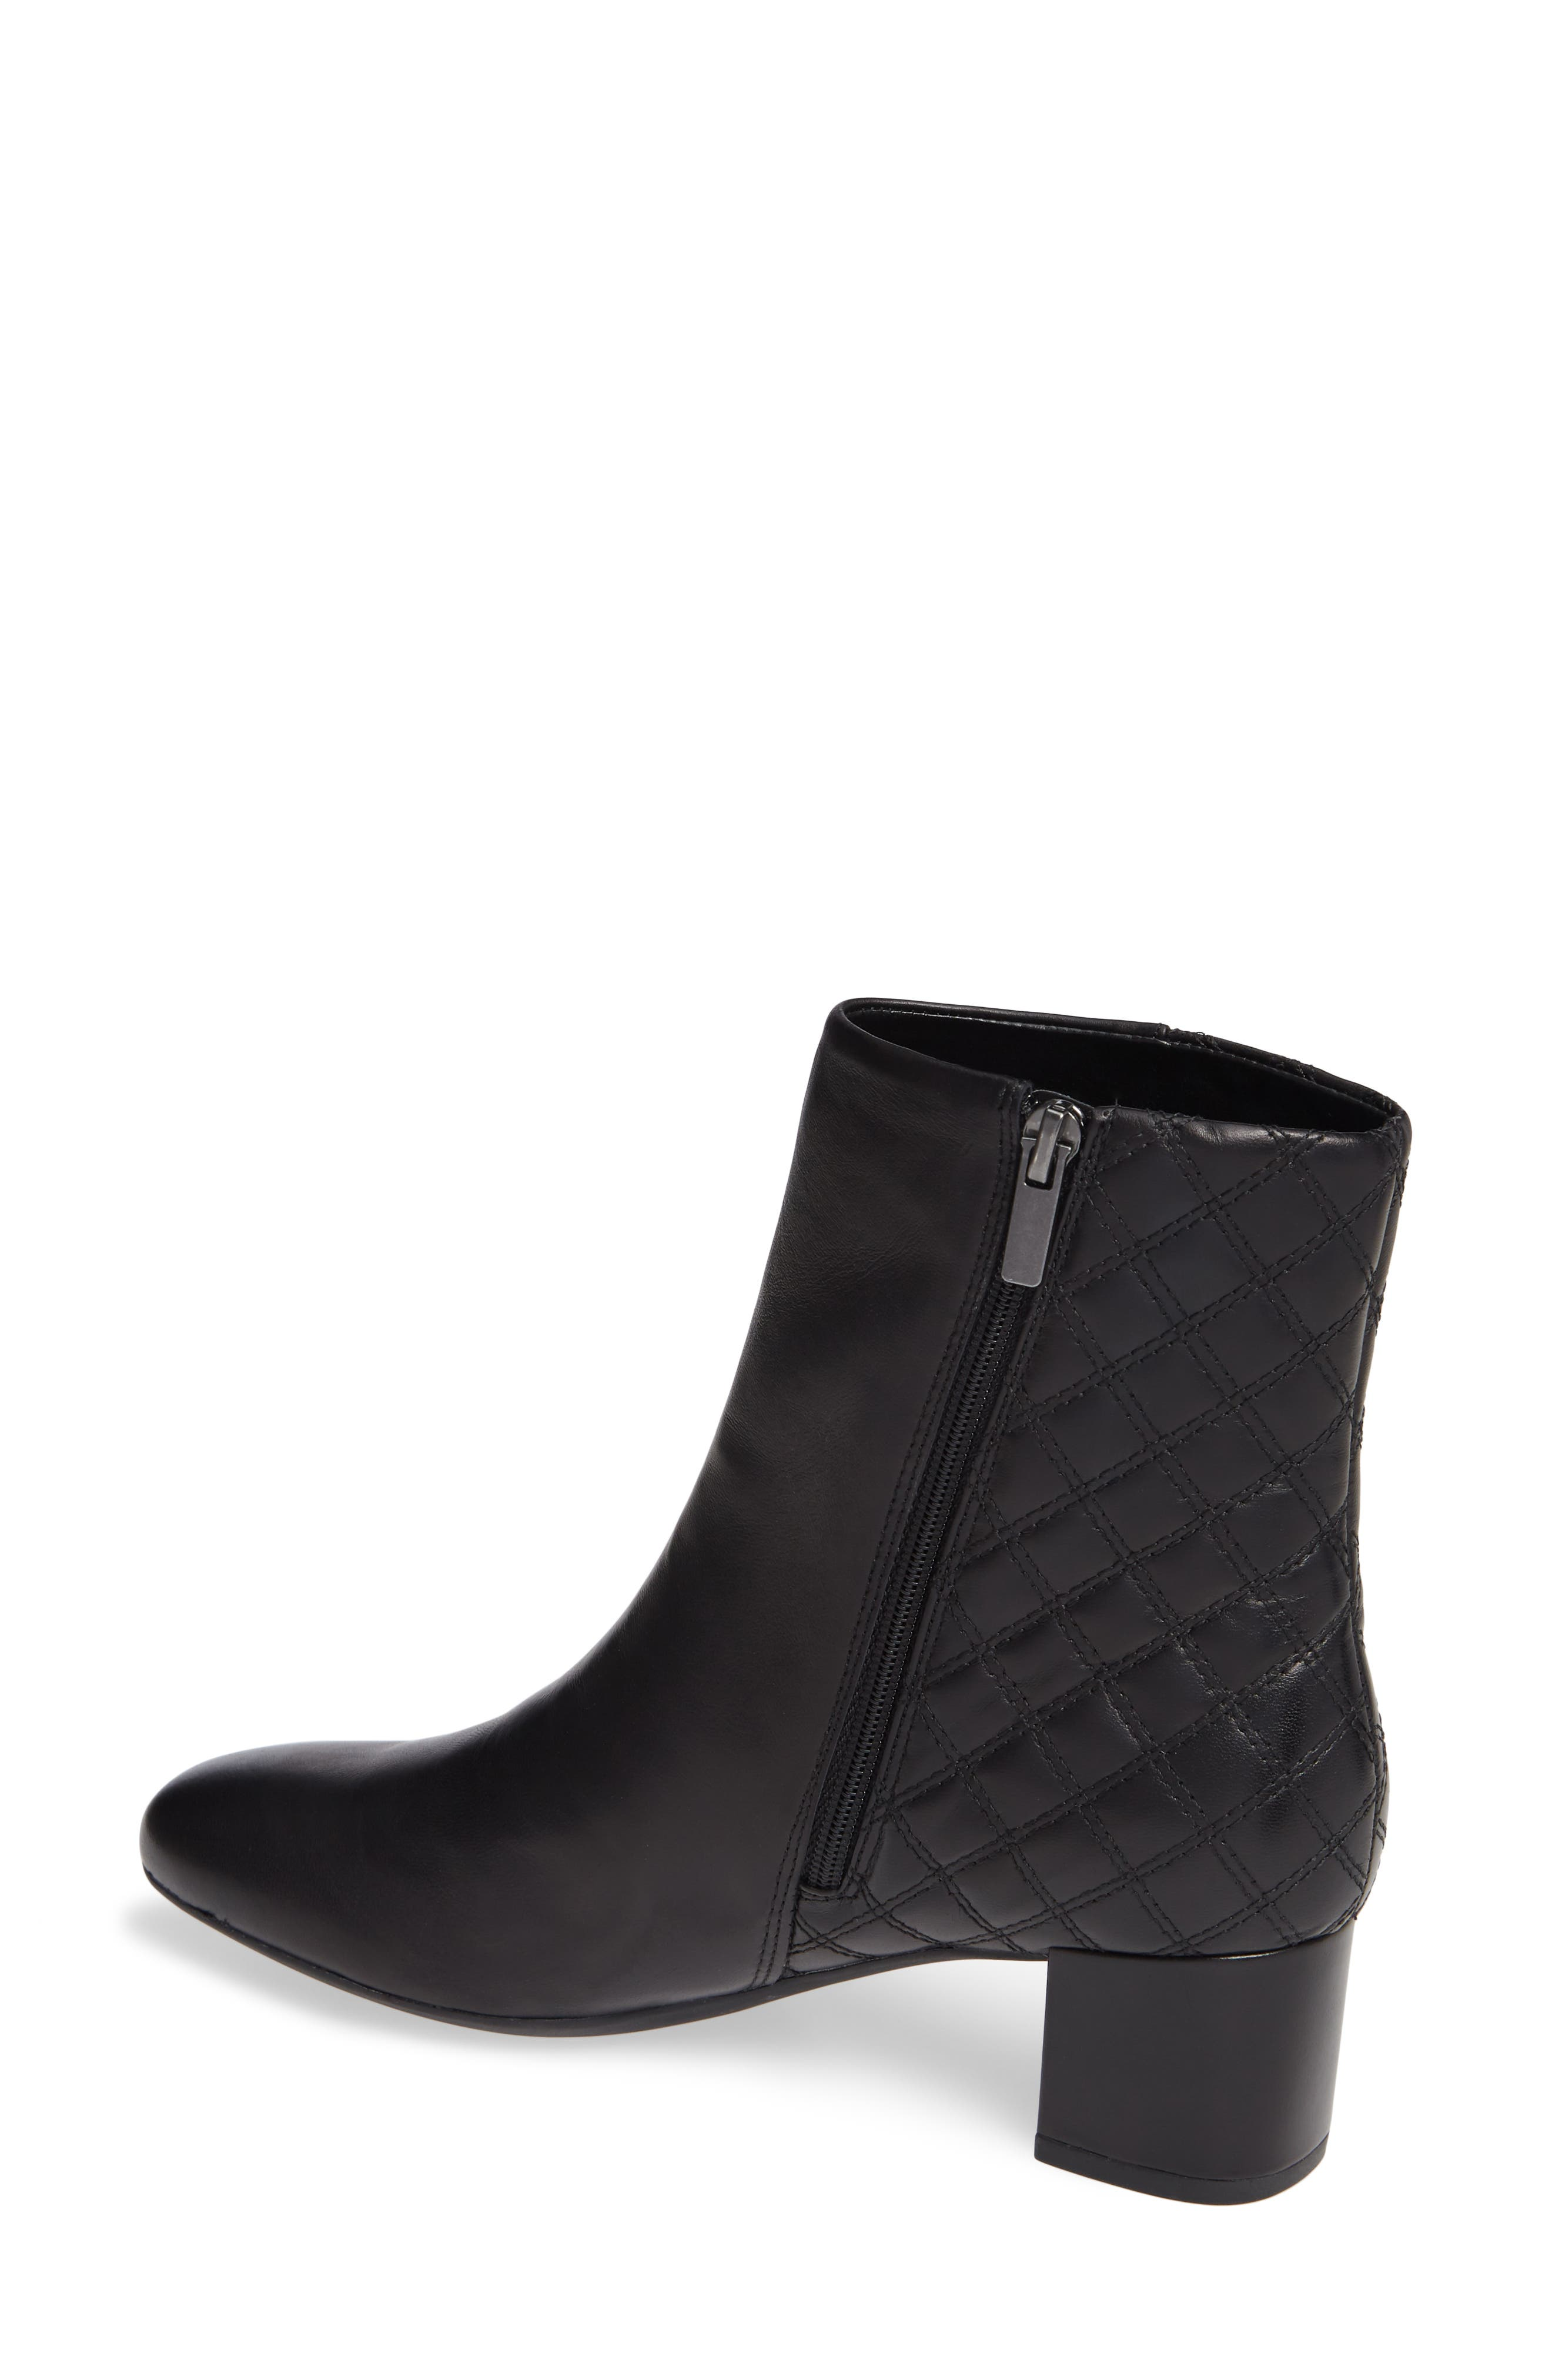 CLARKS<SUP>®</SUP>, Tealia Luck Bootie, Alternate thumbnail 2, color, BLACK LEATHER